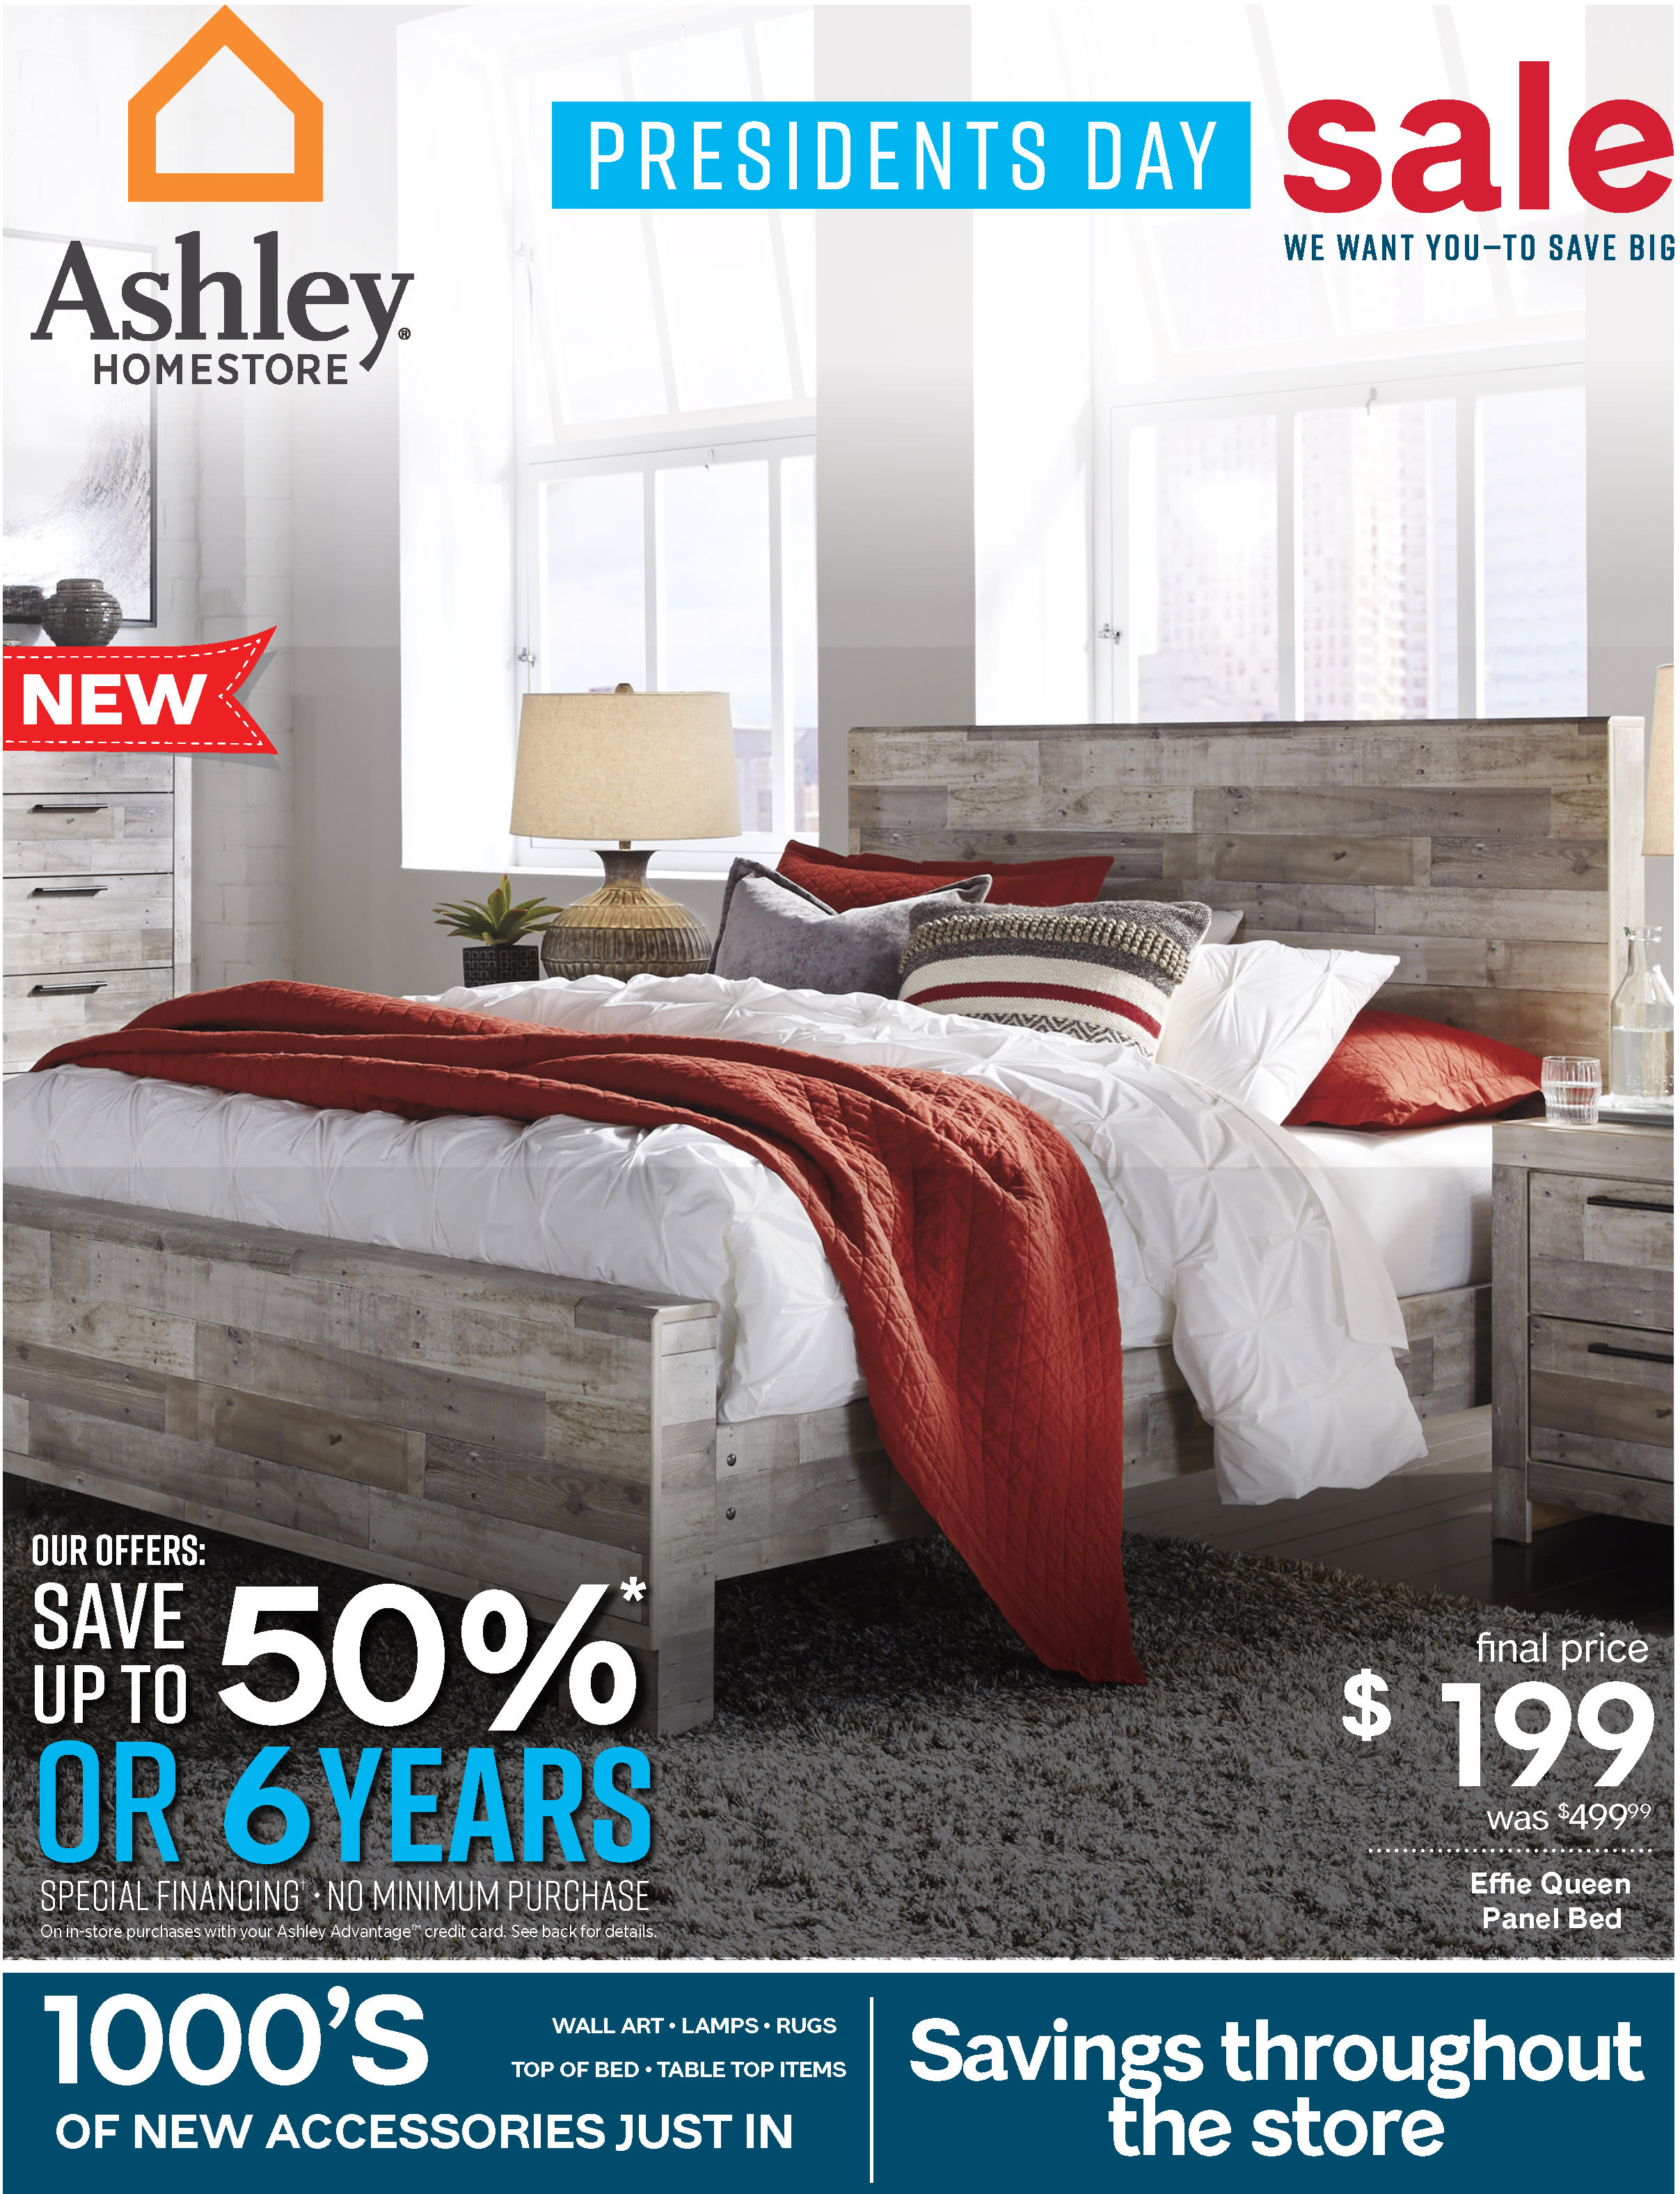 Remarkable Furniture And Mattress Store In Whitehall Pa Ashley Interior Design Ideas Gentotthenellocom